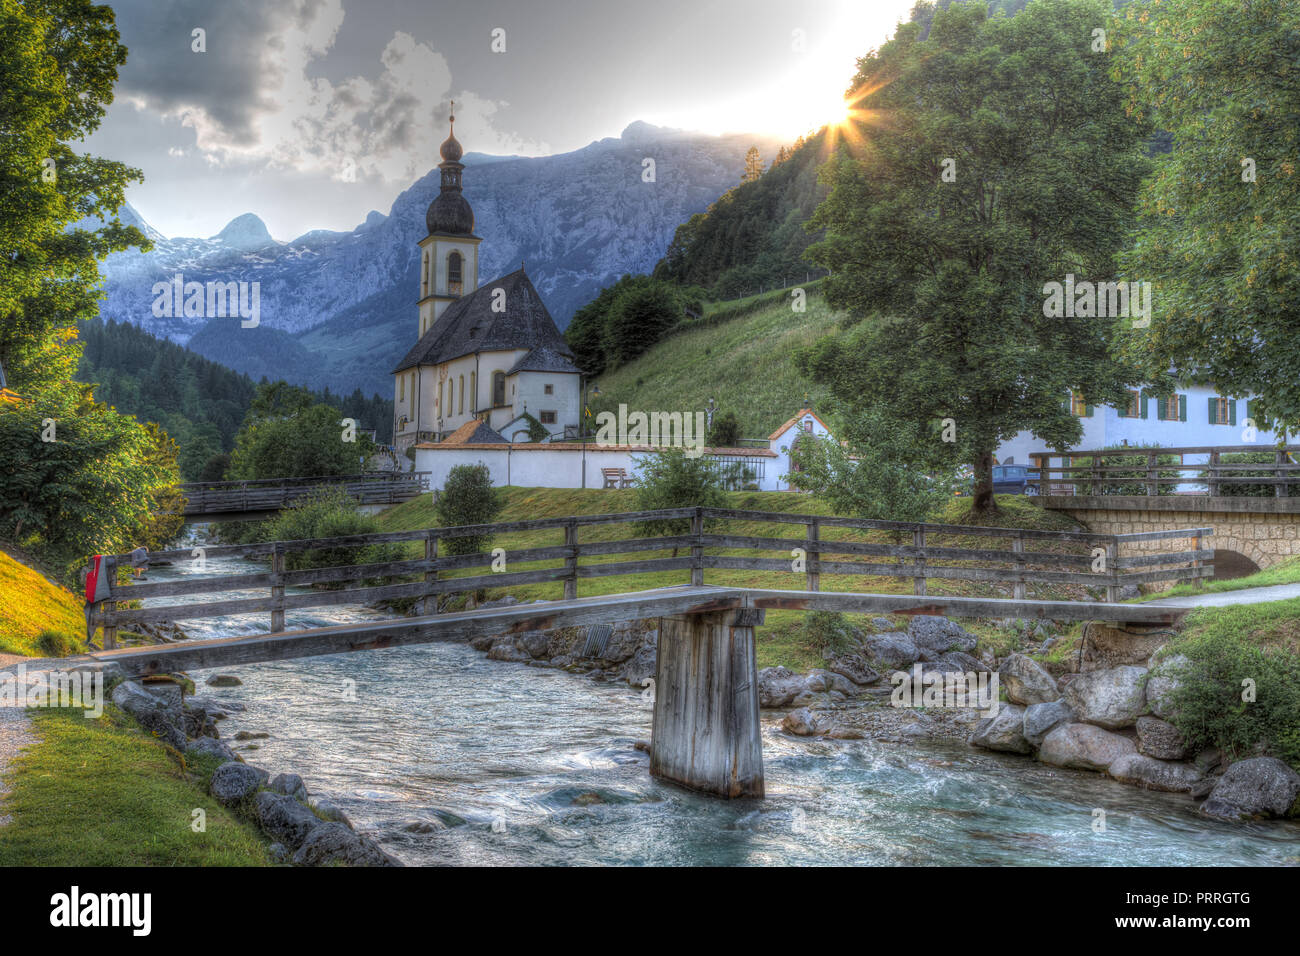 Parish church St. Sebastian with Ramsauer Ache, Ramsau, Berchtesgaden area, Bavaria, Germany - Stock Image